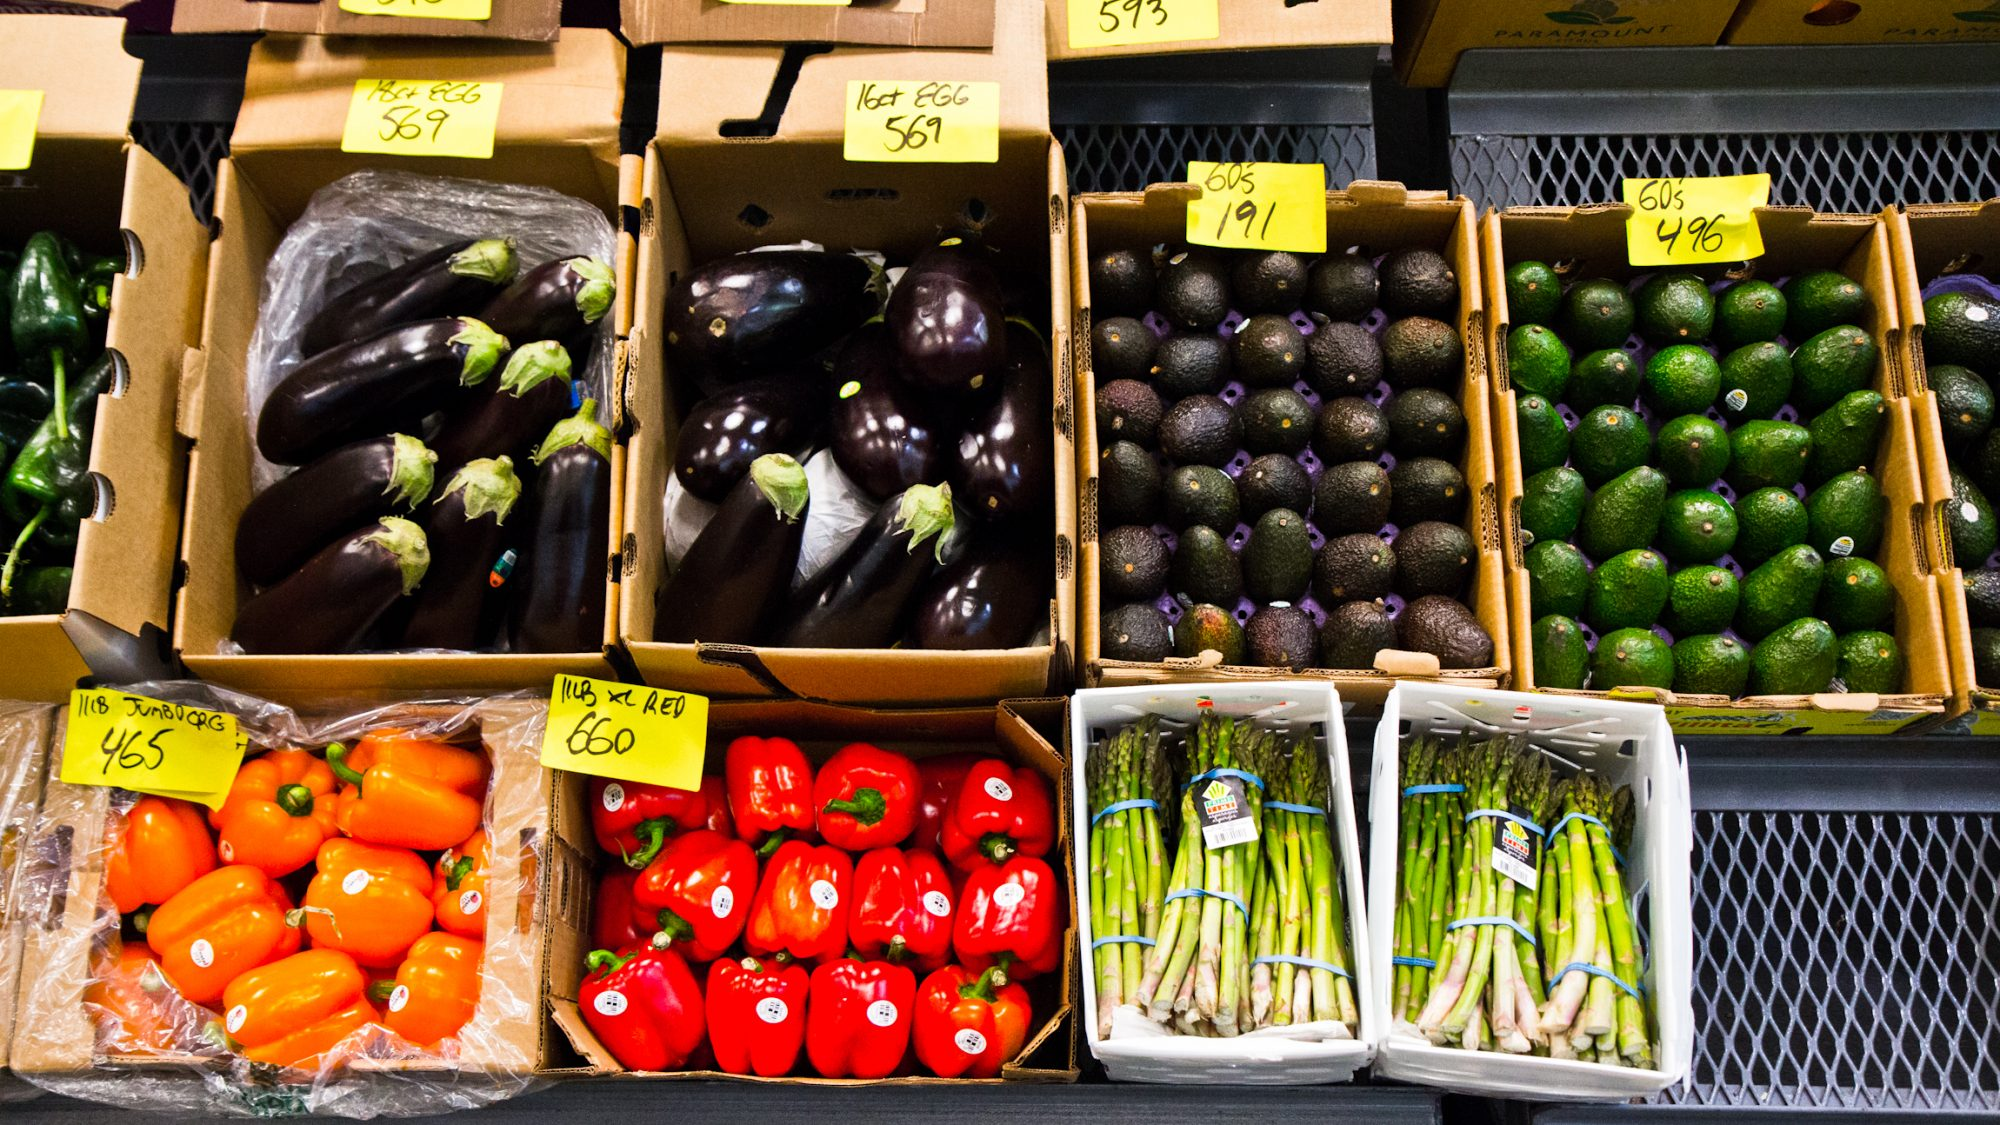 Could a border shutdown affect produce prices in Philly area? - WHYY